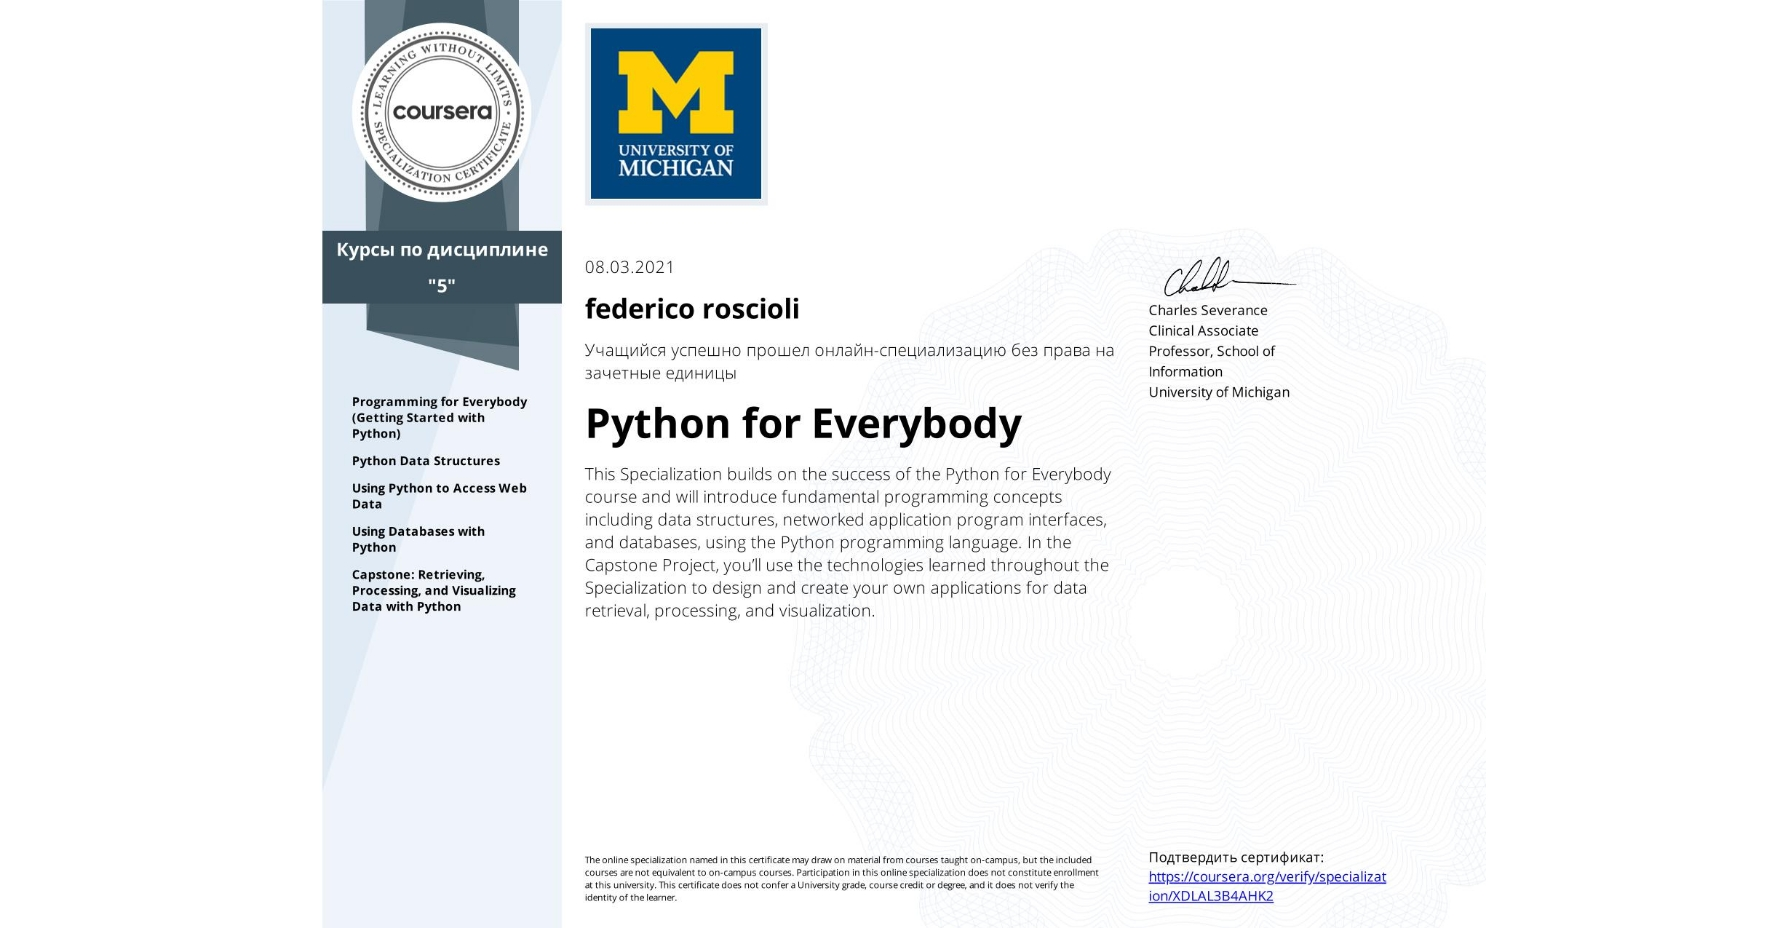 View certificate for federico roscioli, Python for Everybody, offered through Coursera. This Specialization builds on the success of the Python for Everybody course and will introduce fundamental programming concepts including data structures, networked application program interfaces, and databases, using the Python programming language. In the Capstone Project, you'll use the technologies learned throughout the Specialization to design and create your own applications for data retrieval, processing, and visualization.